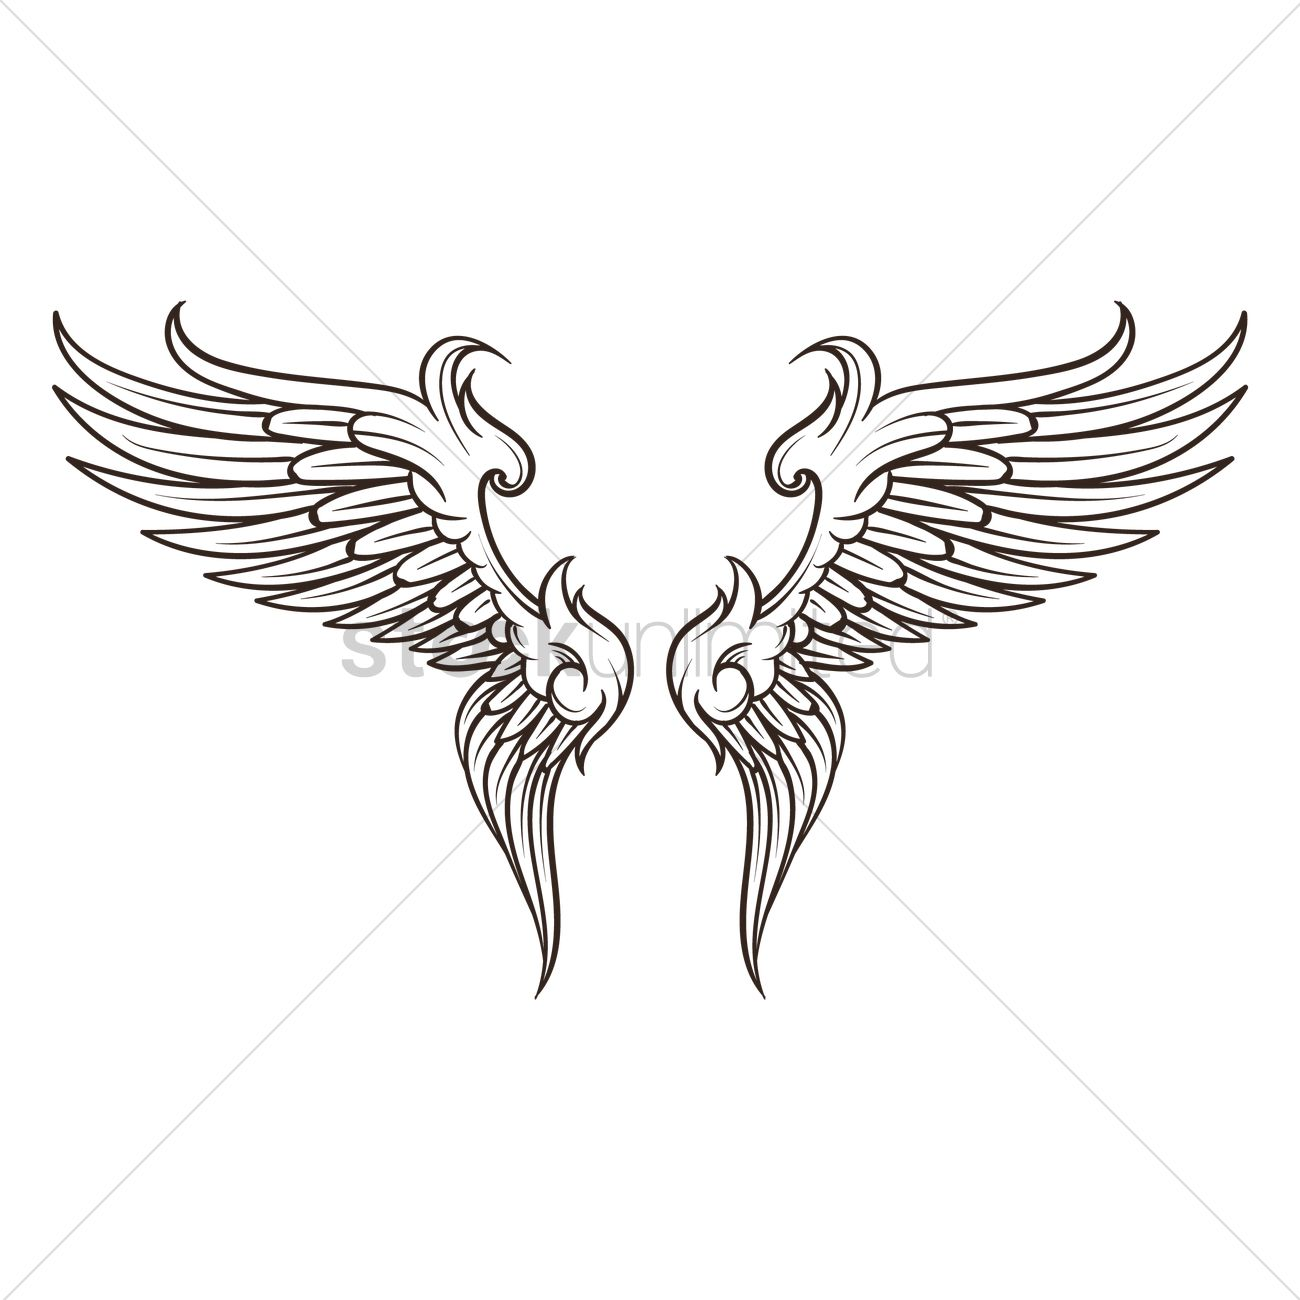 98d12fe4 Wings design Vector Image - 1873139 | StockUnlimited